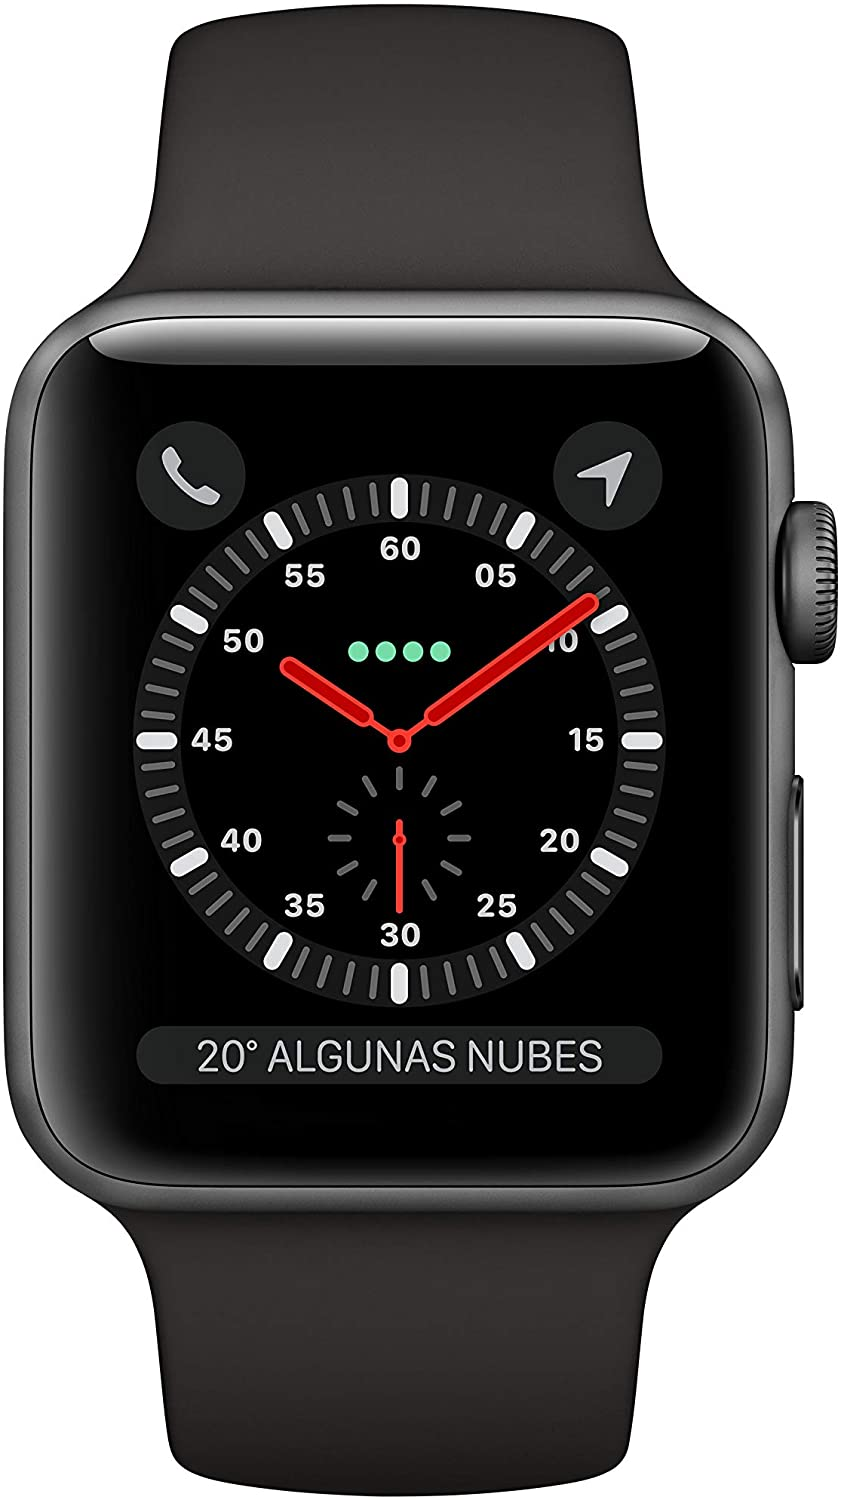 APPLE WATCH SERIES 3 GPS/CELL 42MM GRIS NEGRO